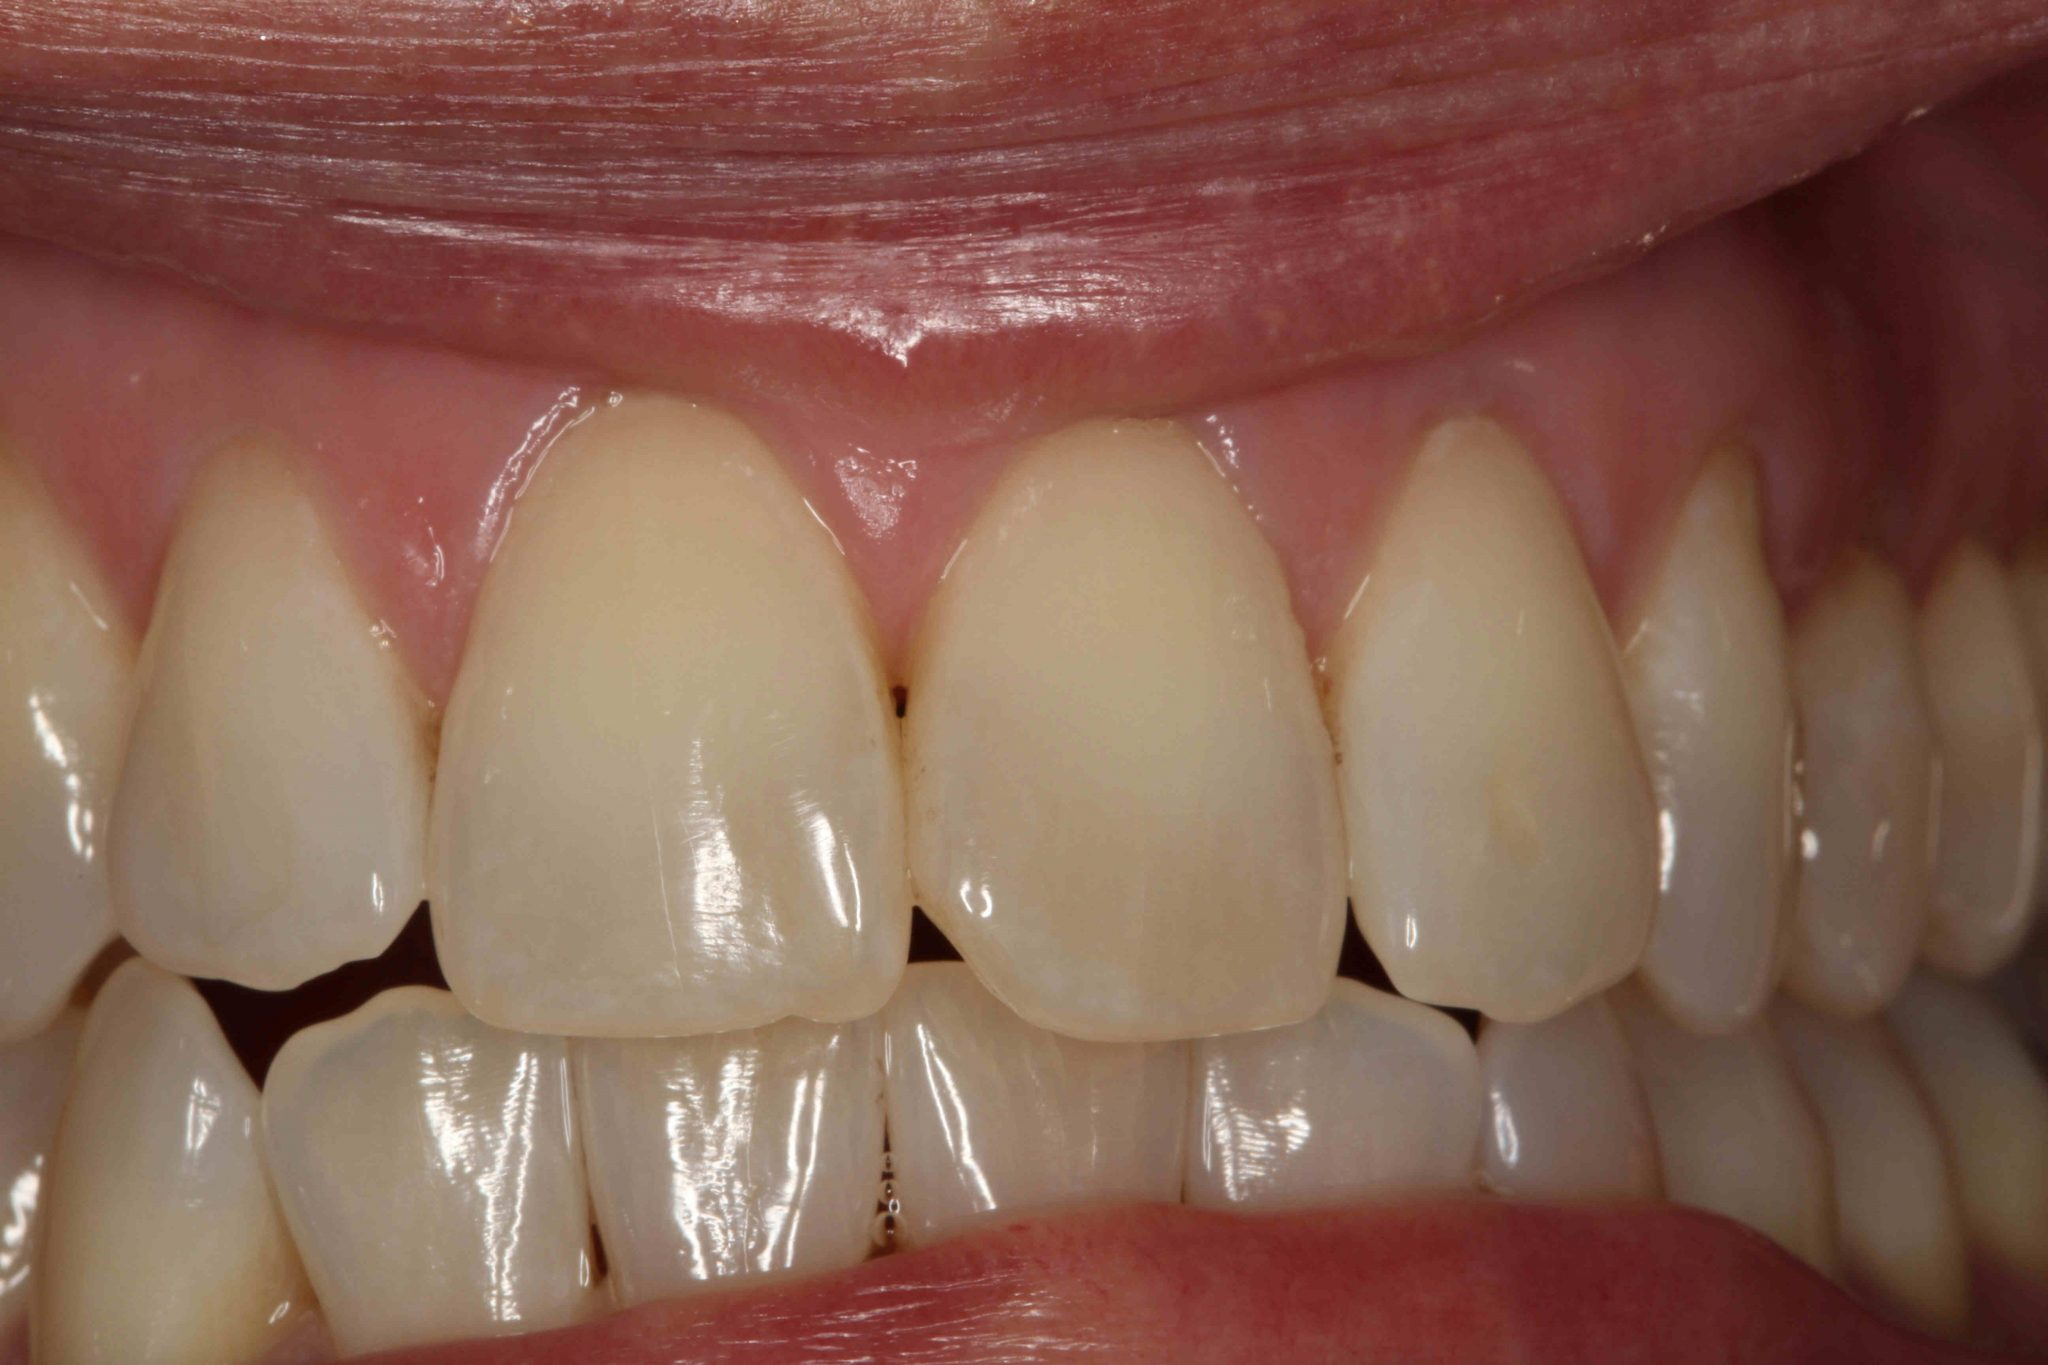 Dental Implant - After Treatment